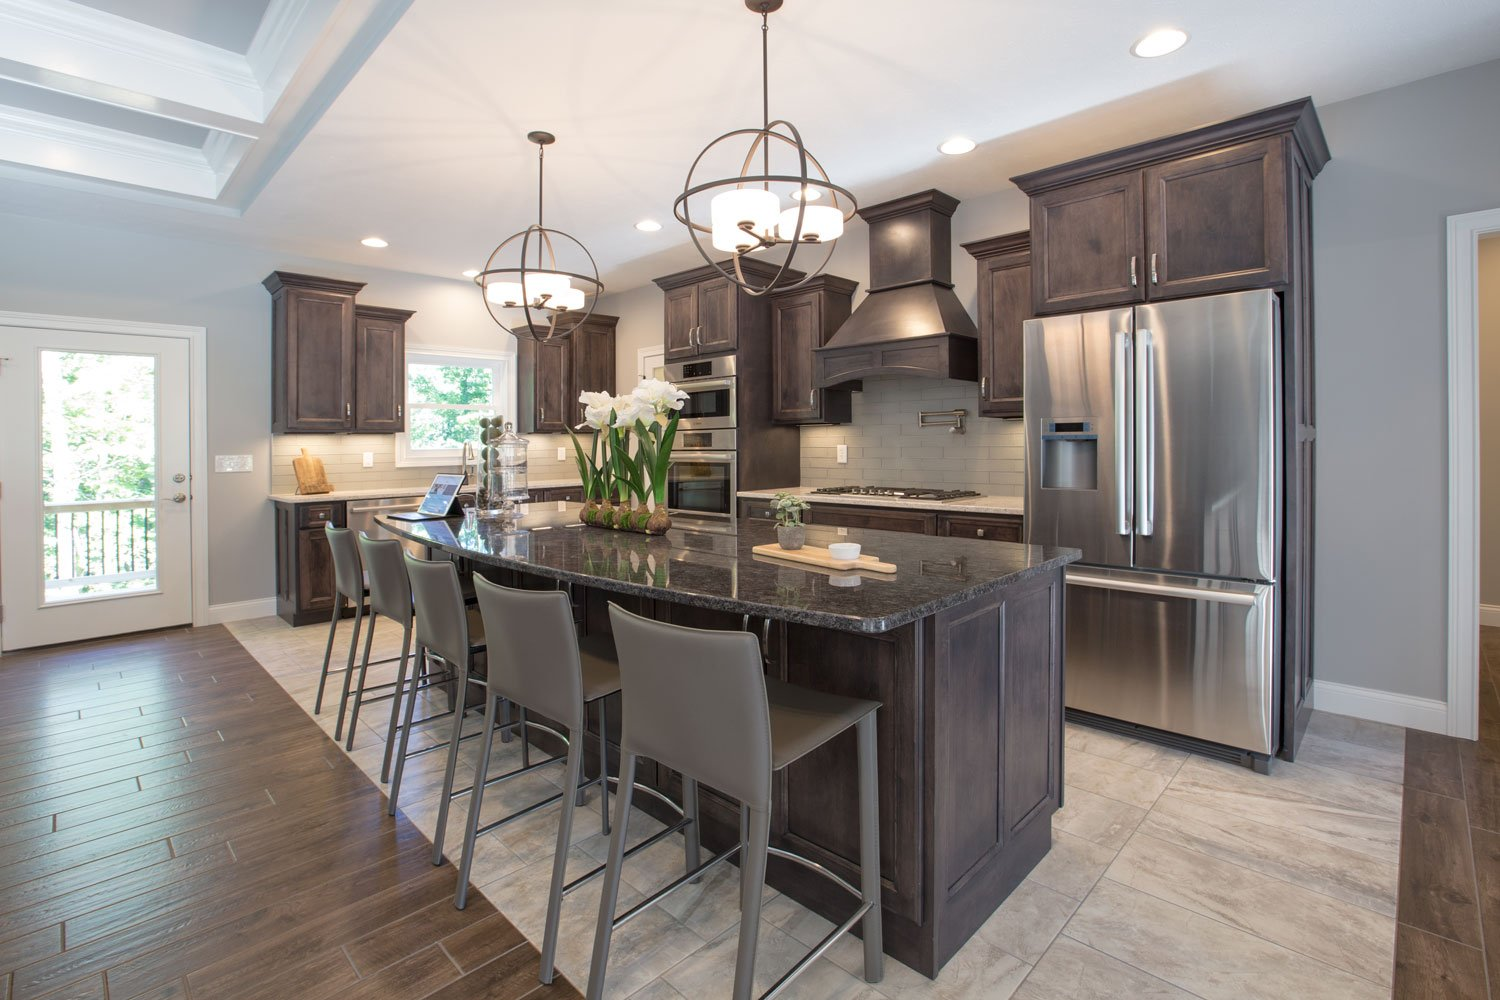 2017 evansville parade of homes 2017 home of the year dining kitchen